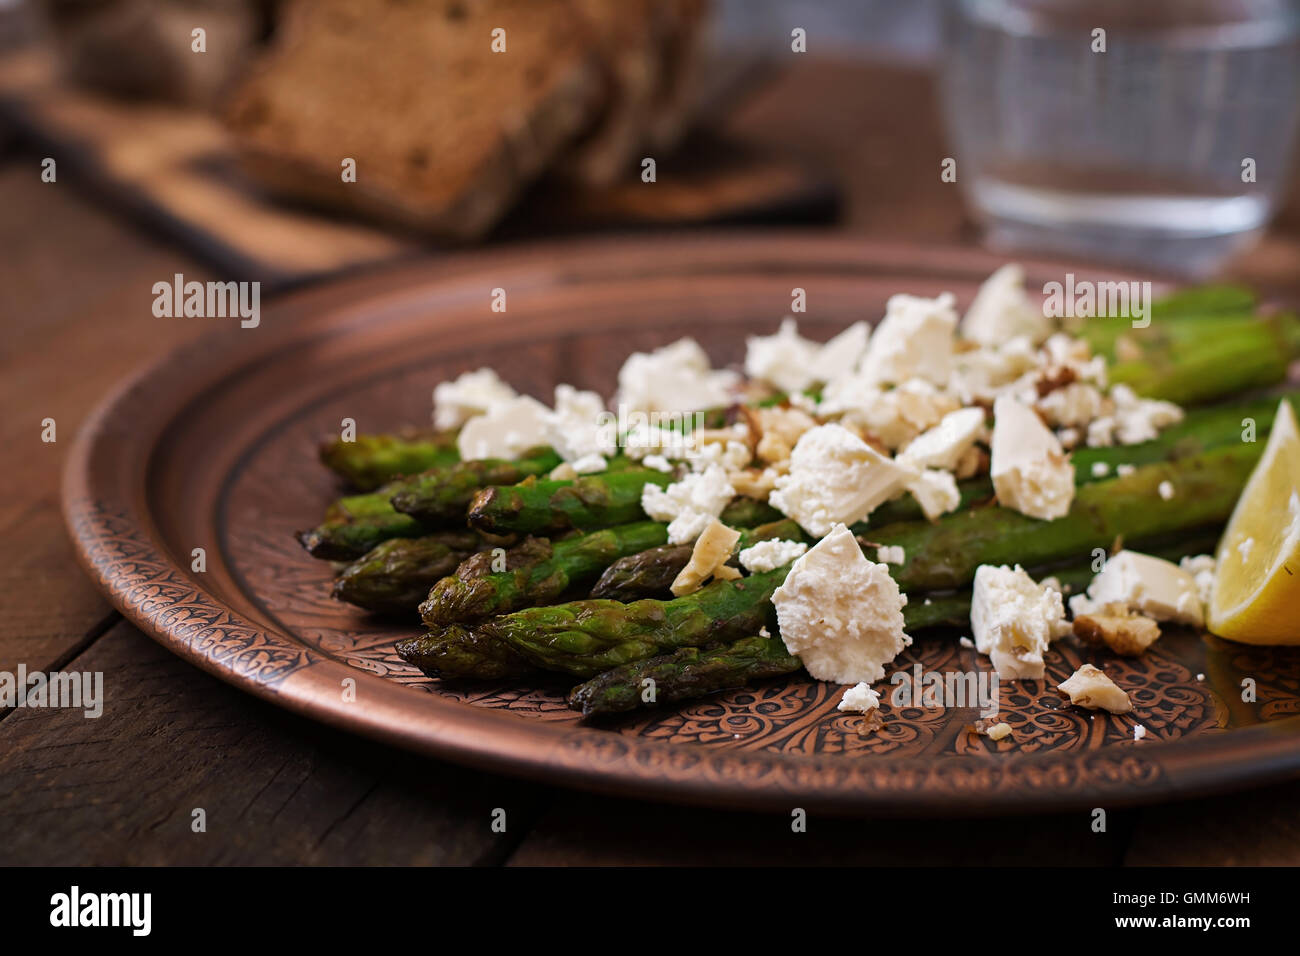 Warm salad of roasted asparagus, feta cheese, nuts, flavored with lemon juice - Stock Image